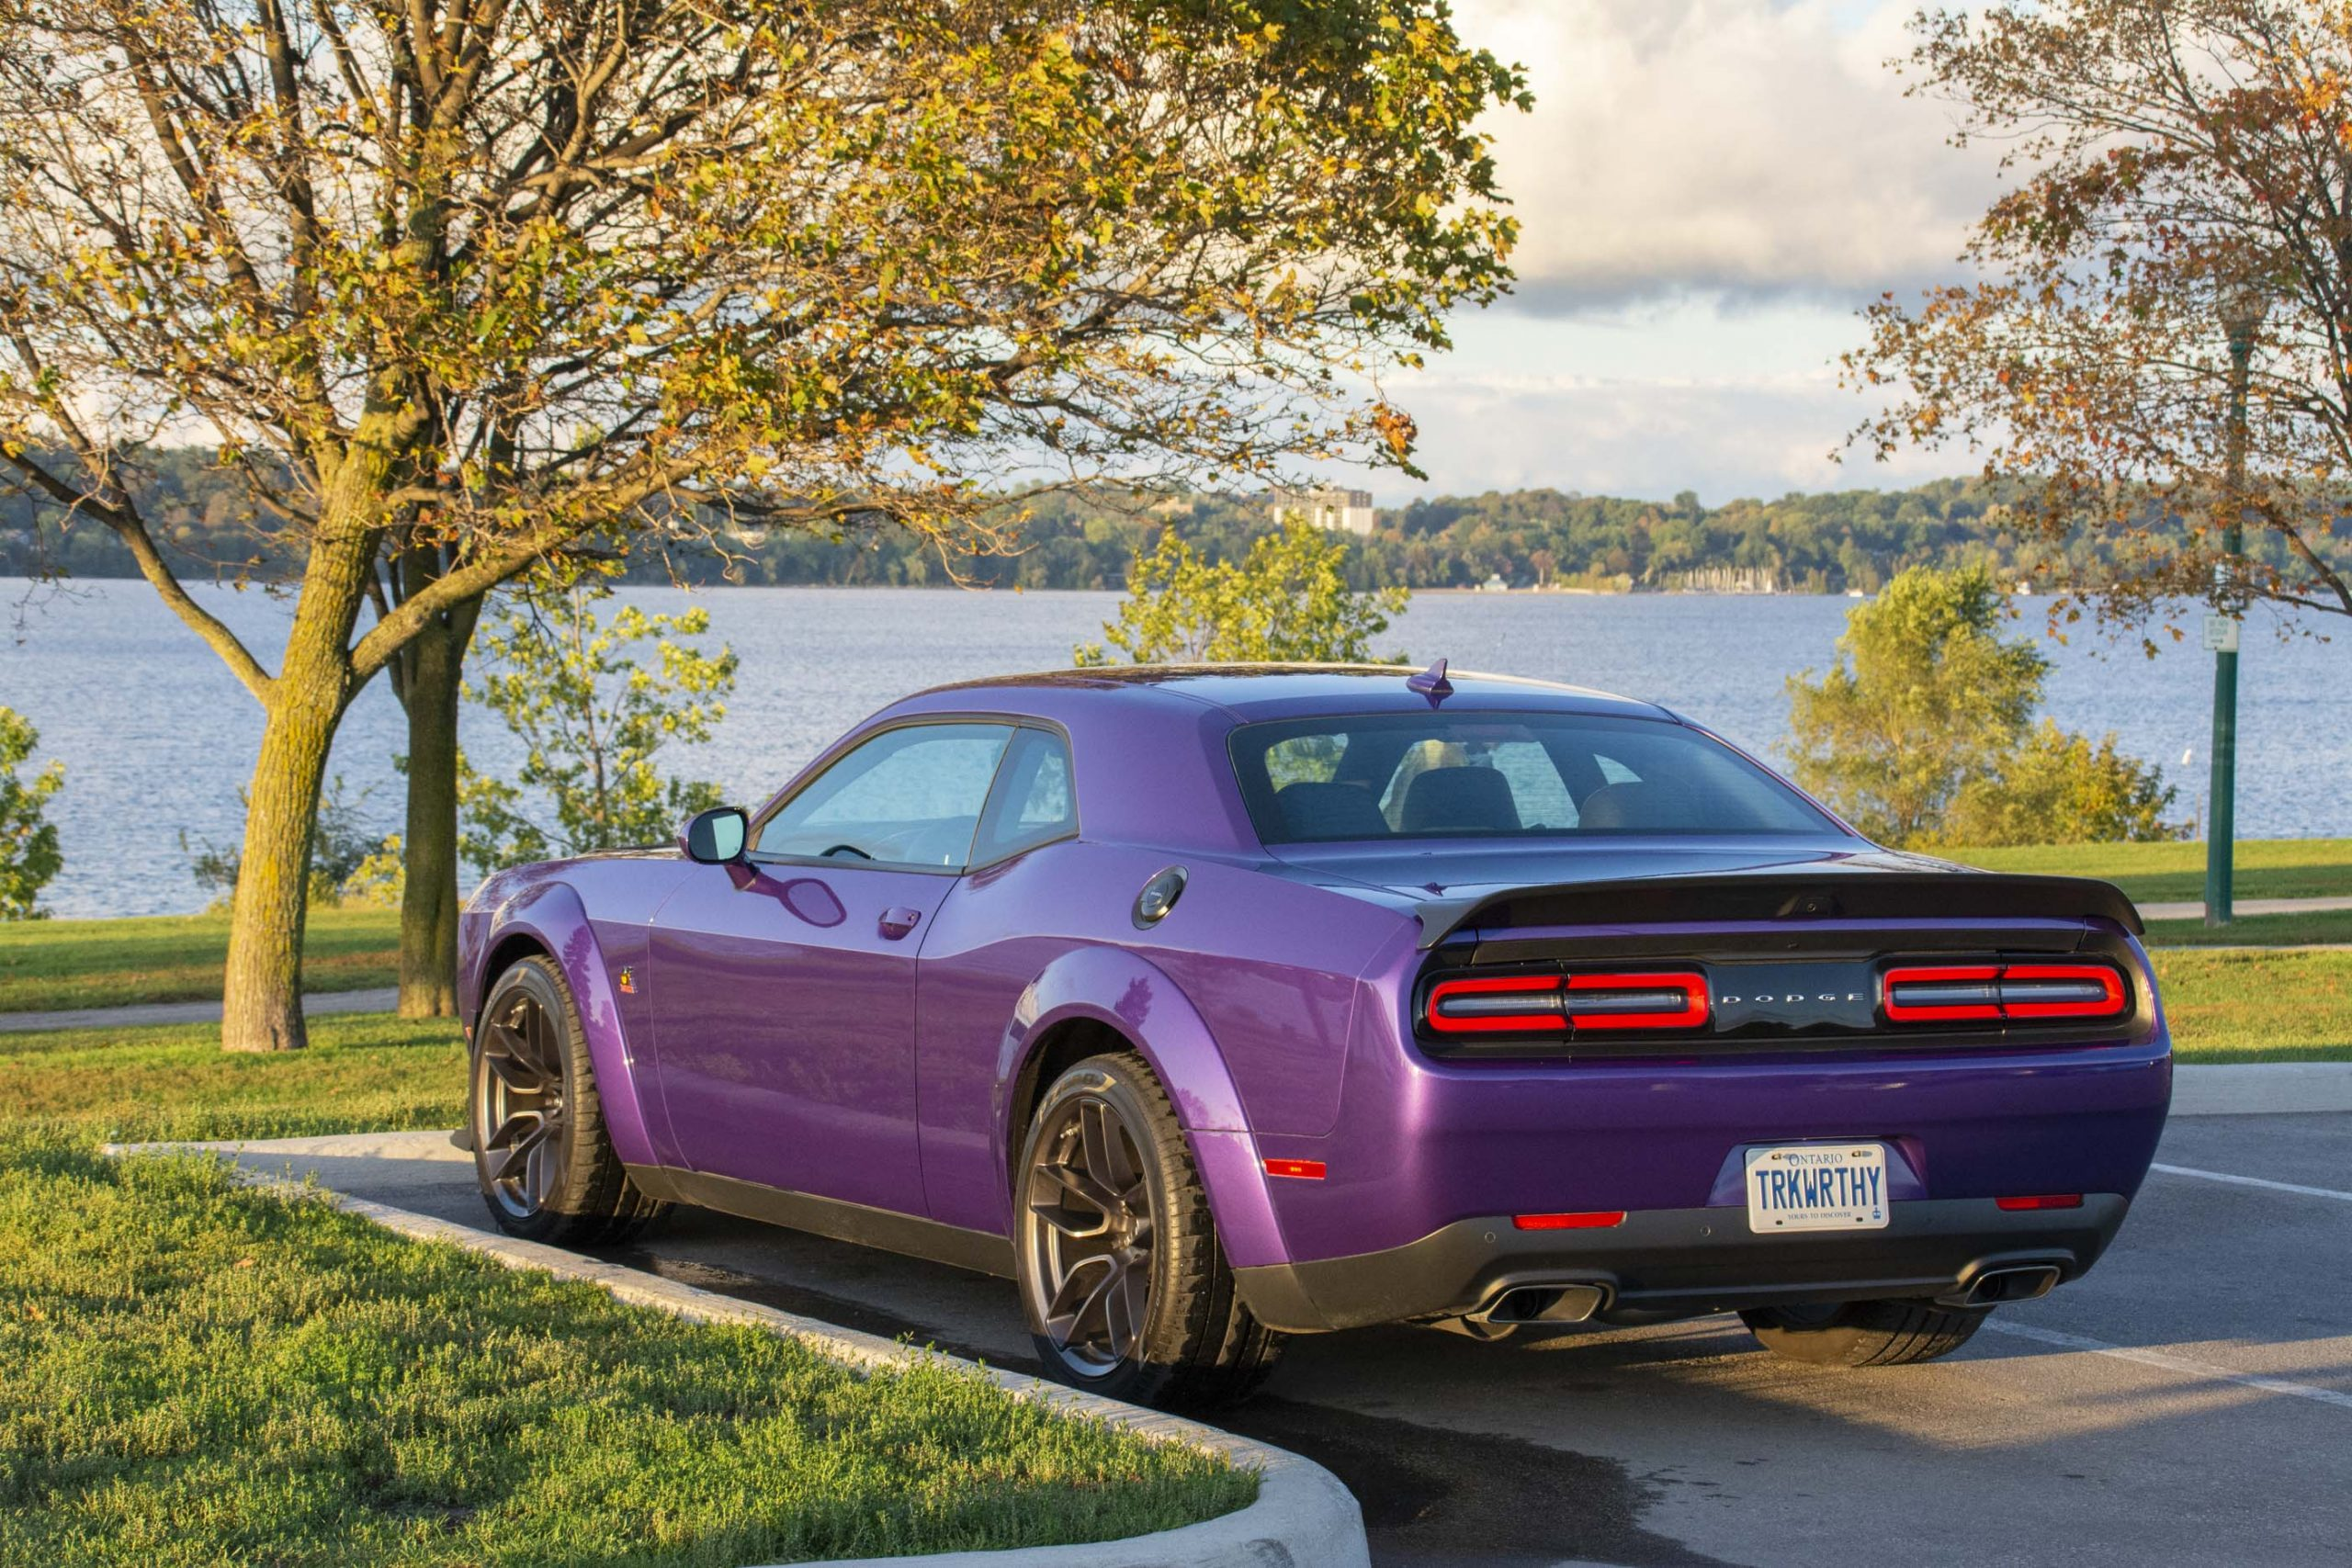 2019 Dodge Challenger Scat Pack 392 Widebody is Plum Crazy